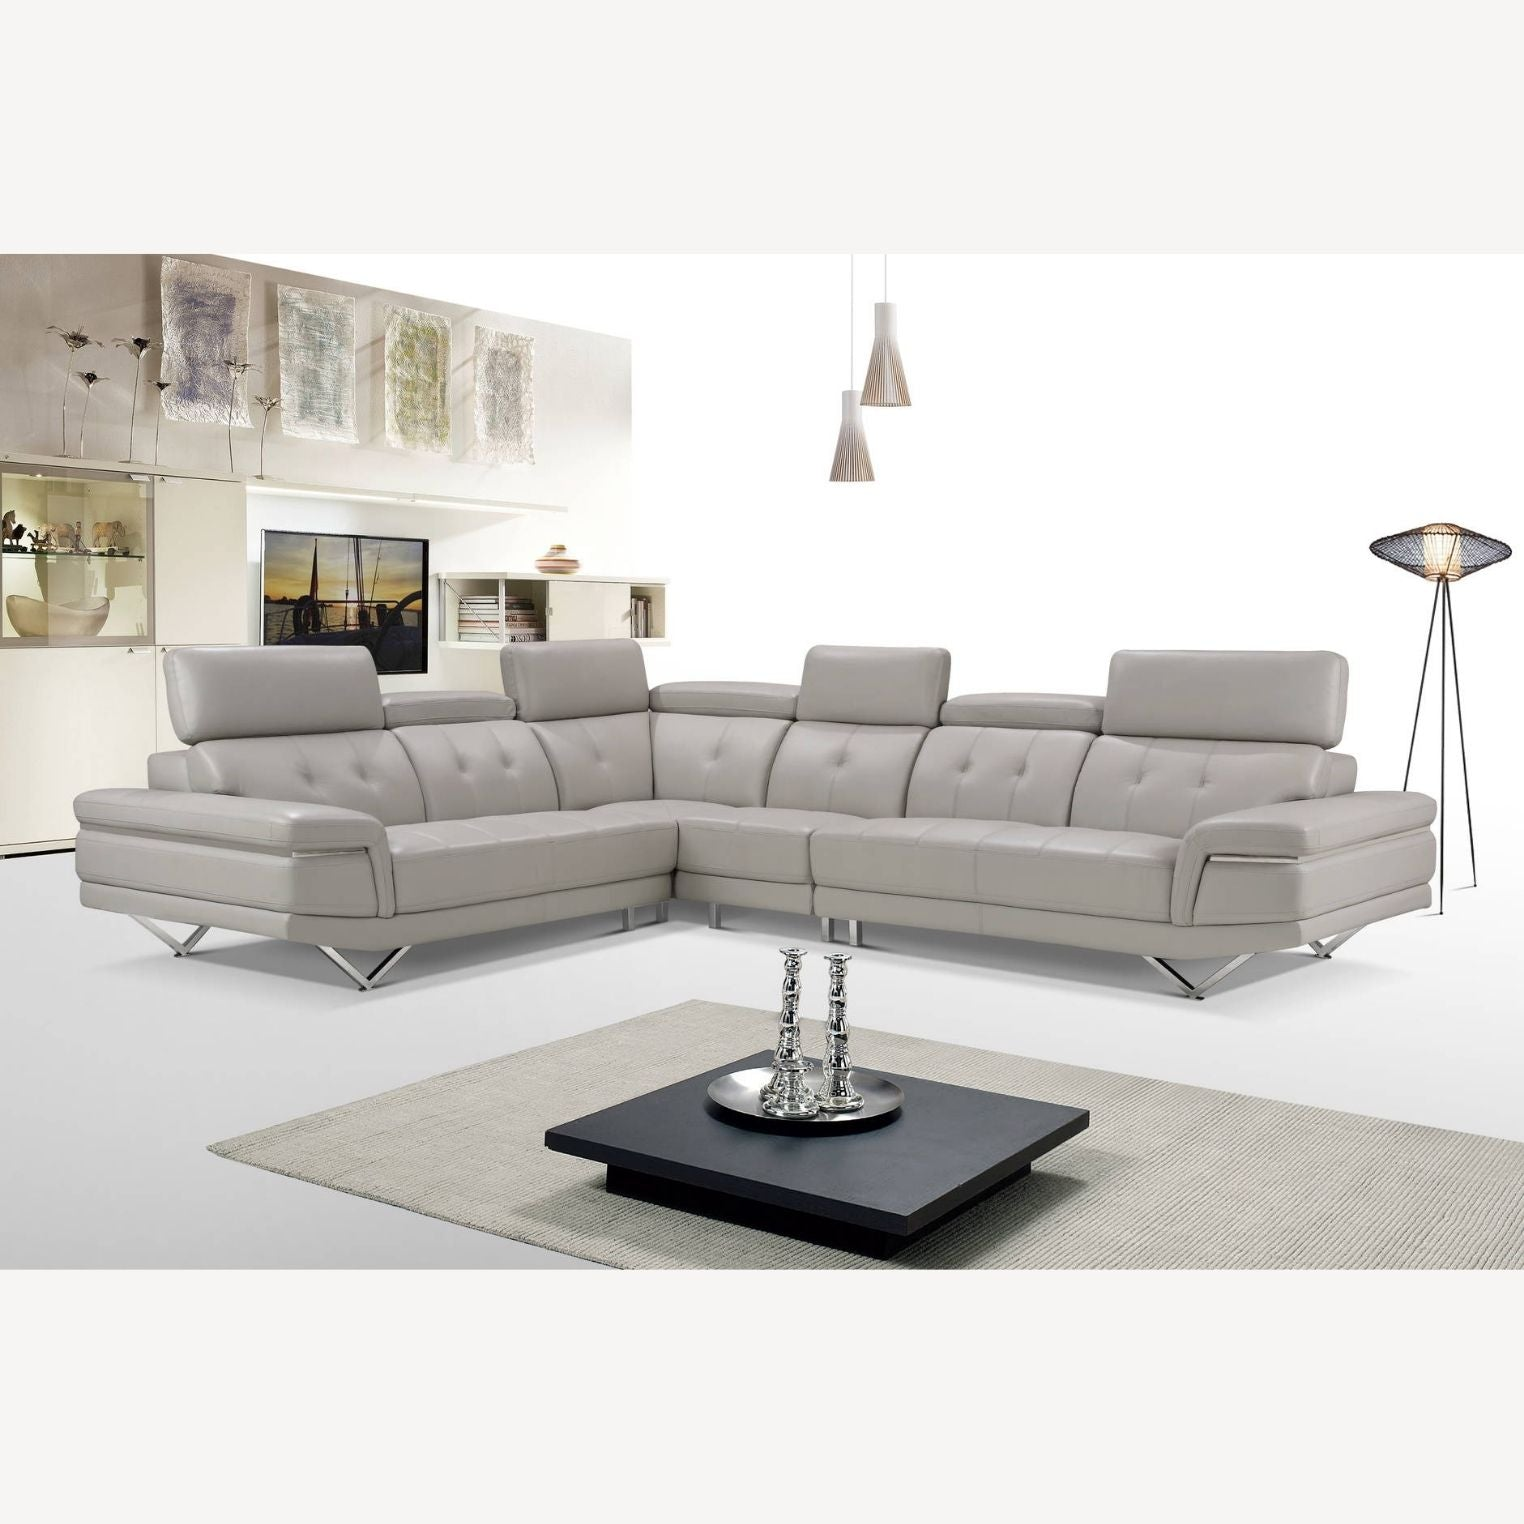 sectional_sofa_leather_grey_seville